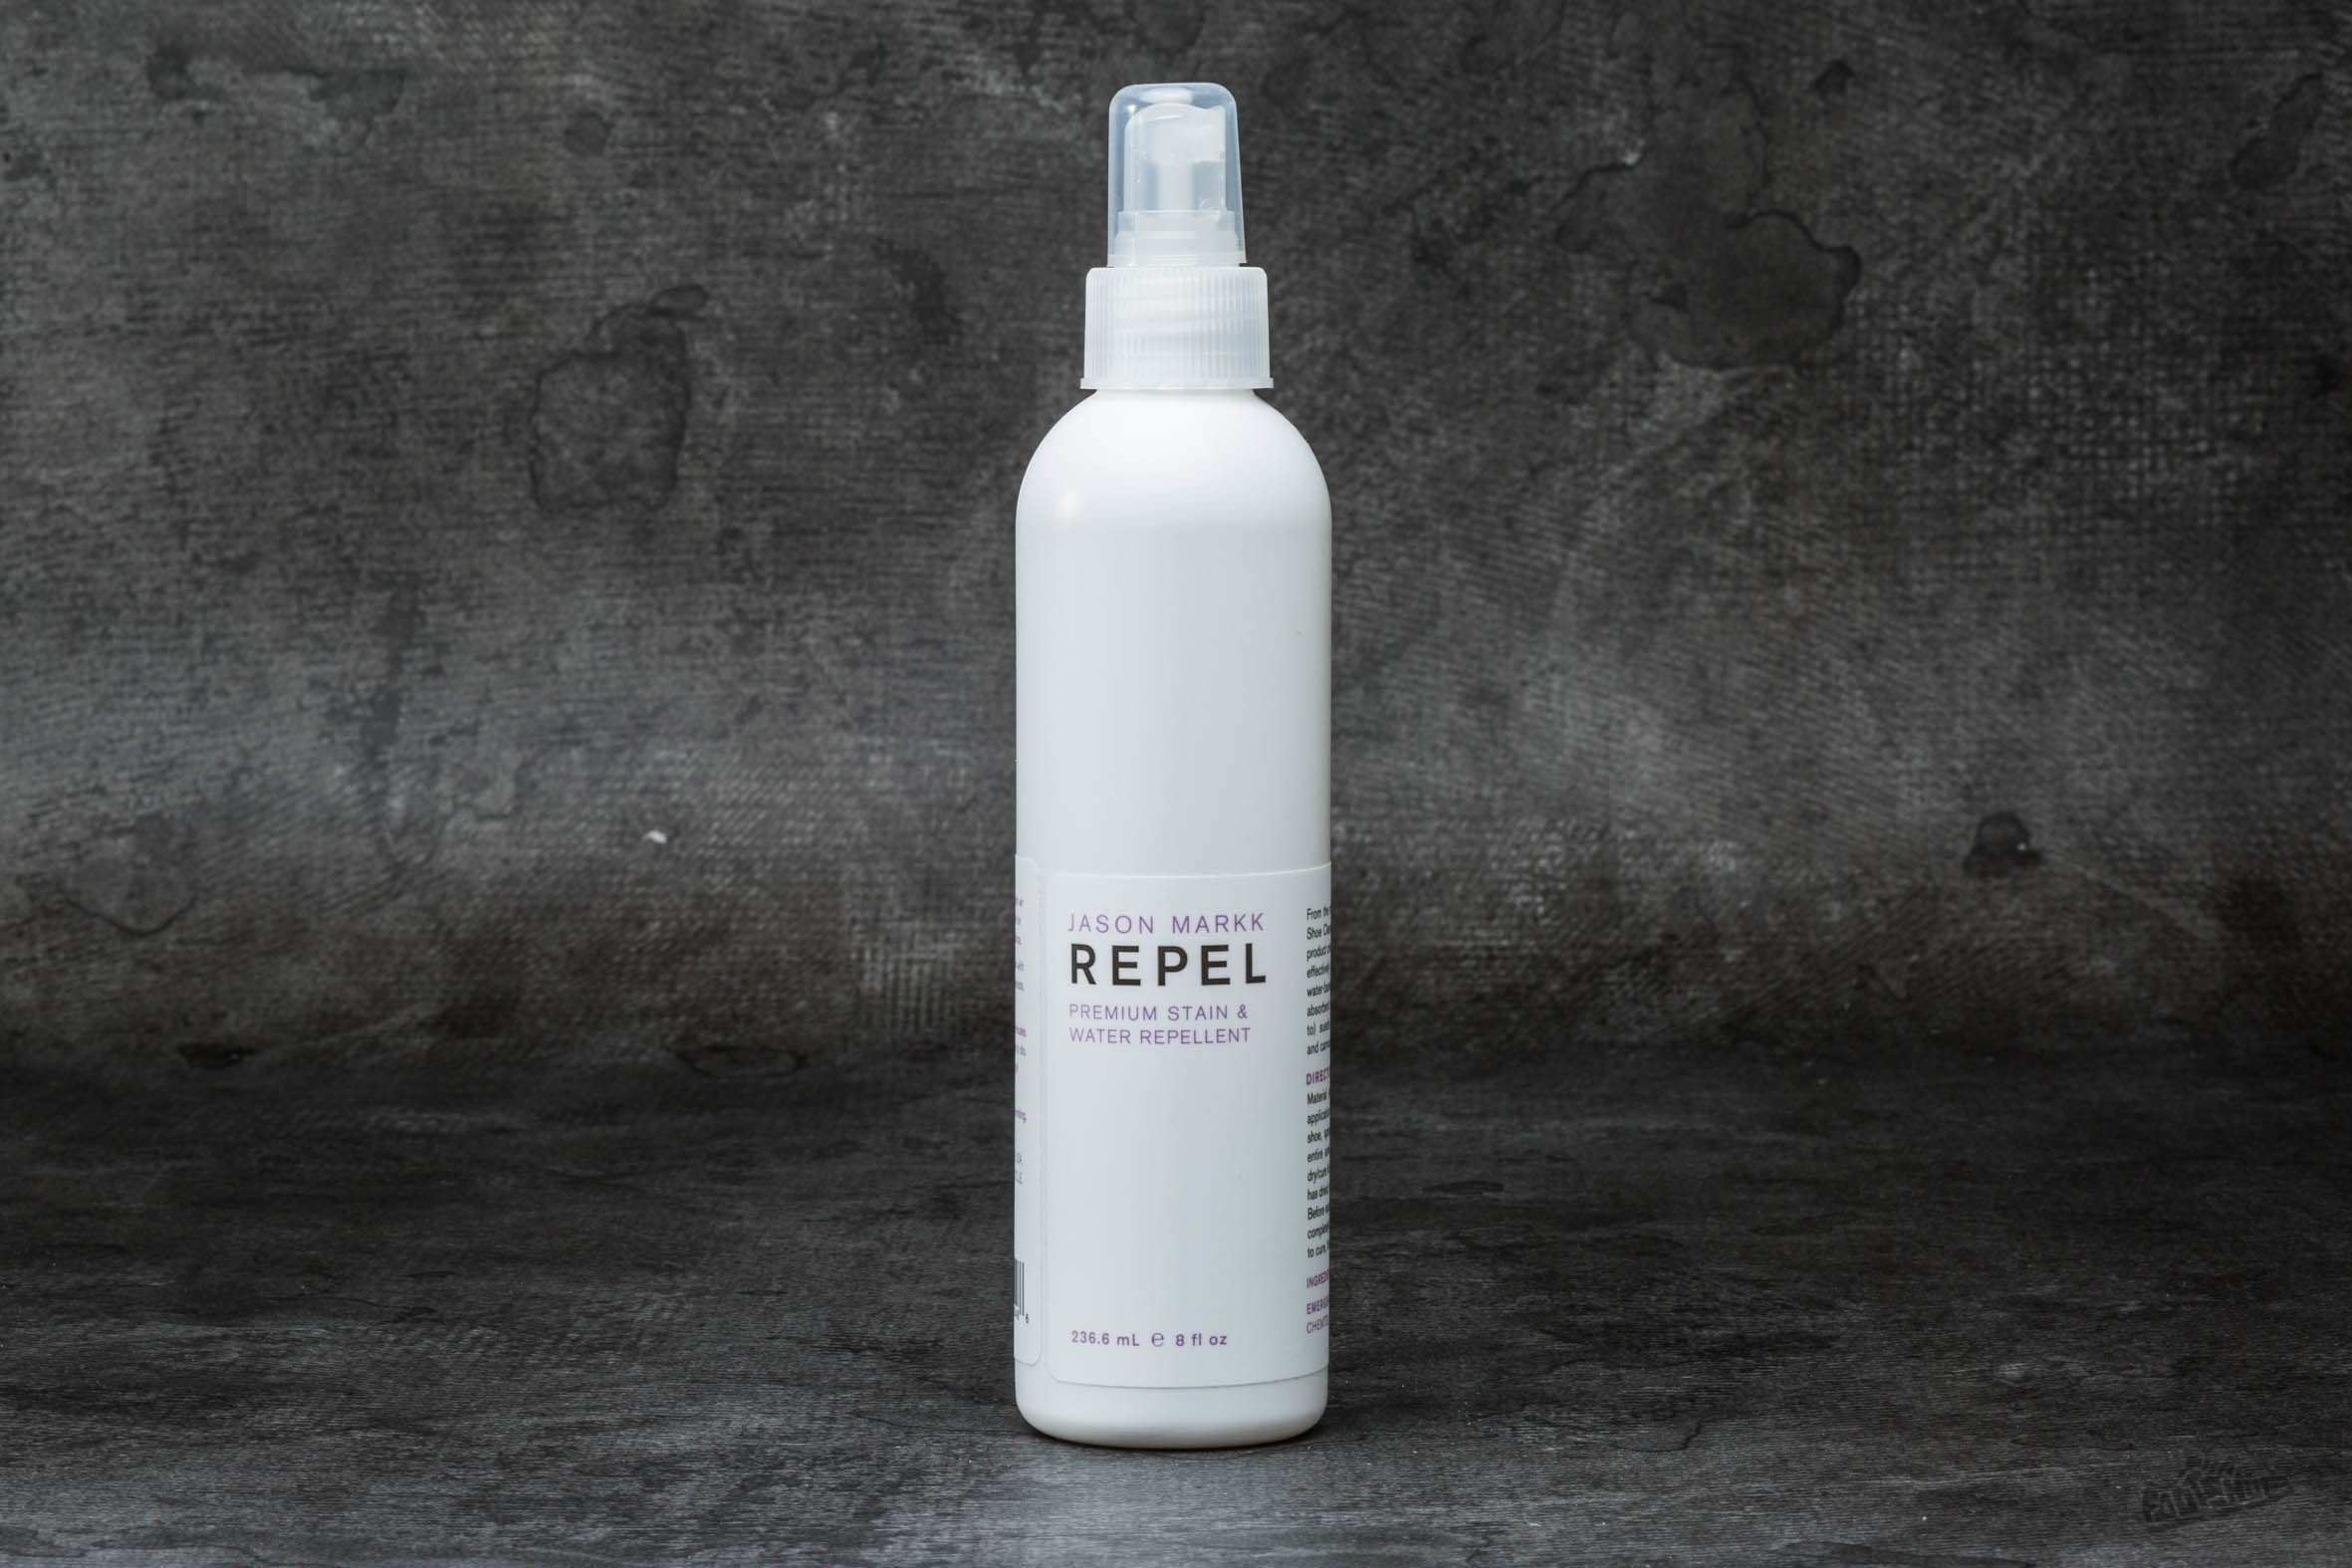 Jason Markk Repel Pump Spray 236,6 ml - 8614